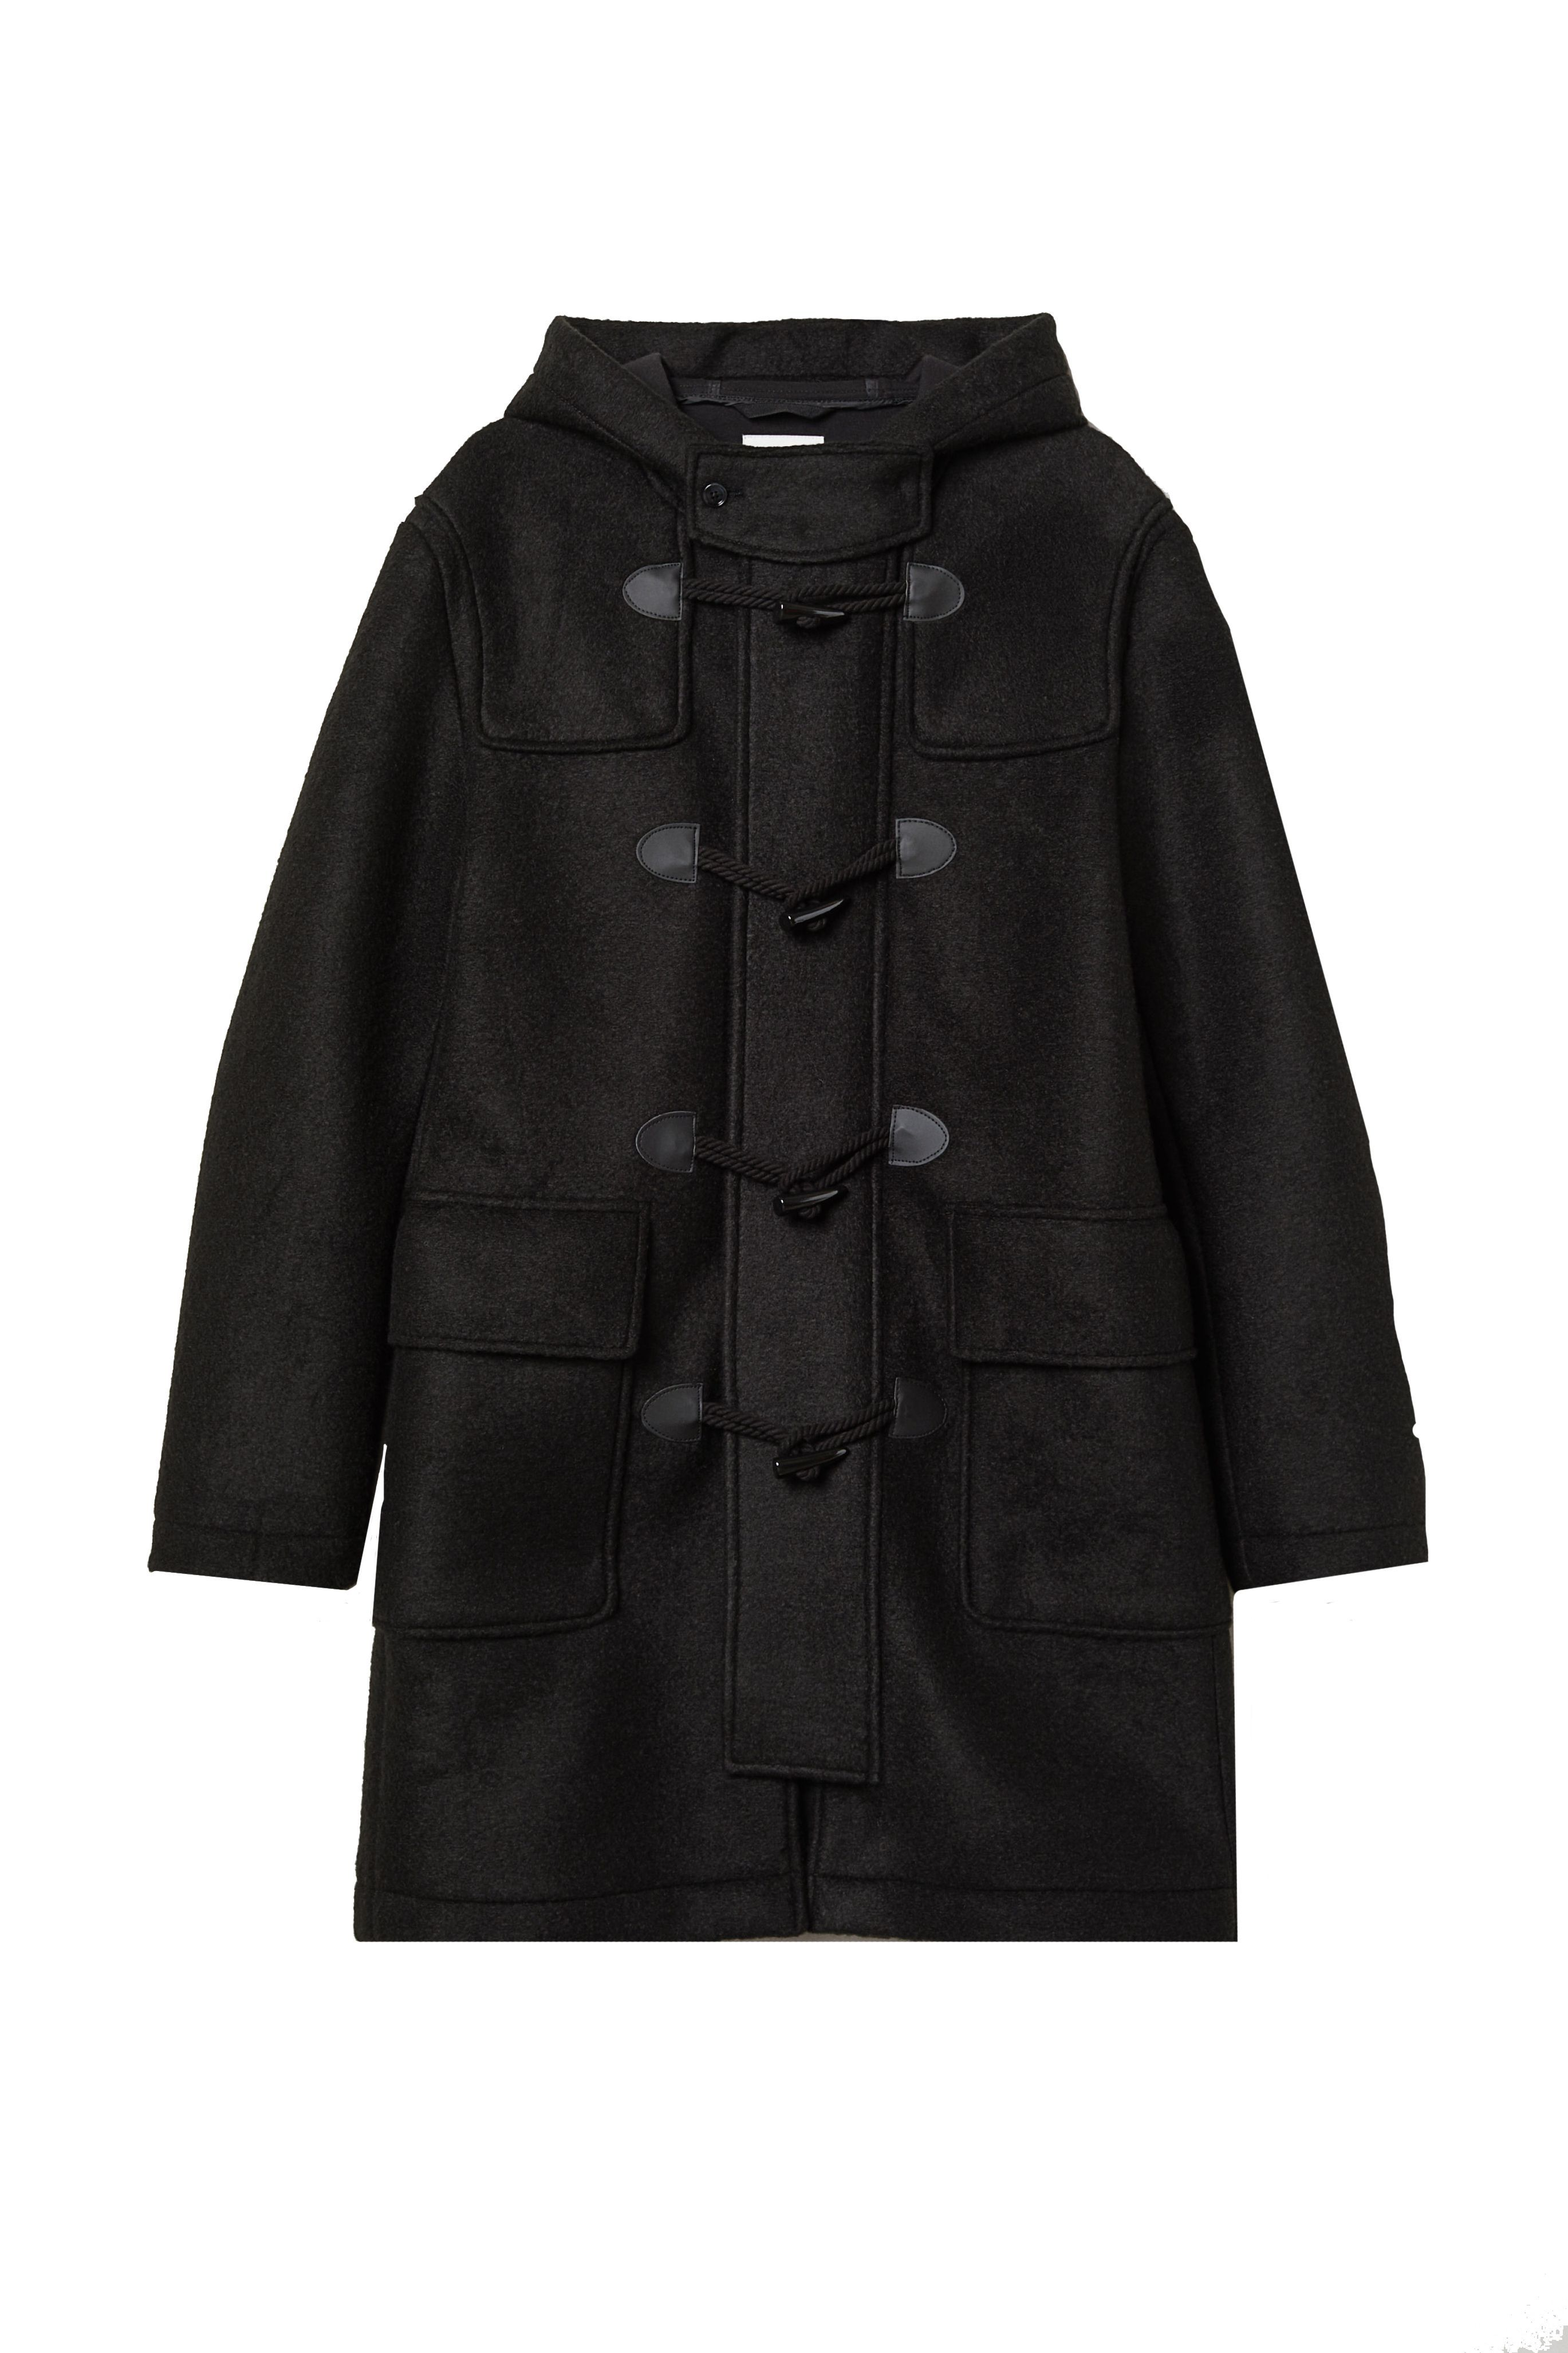 Top Buys: Fall 2010 Outerwear